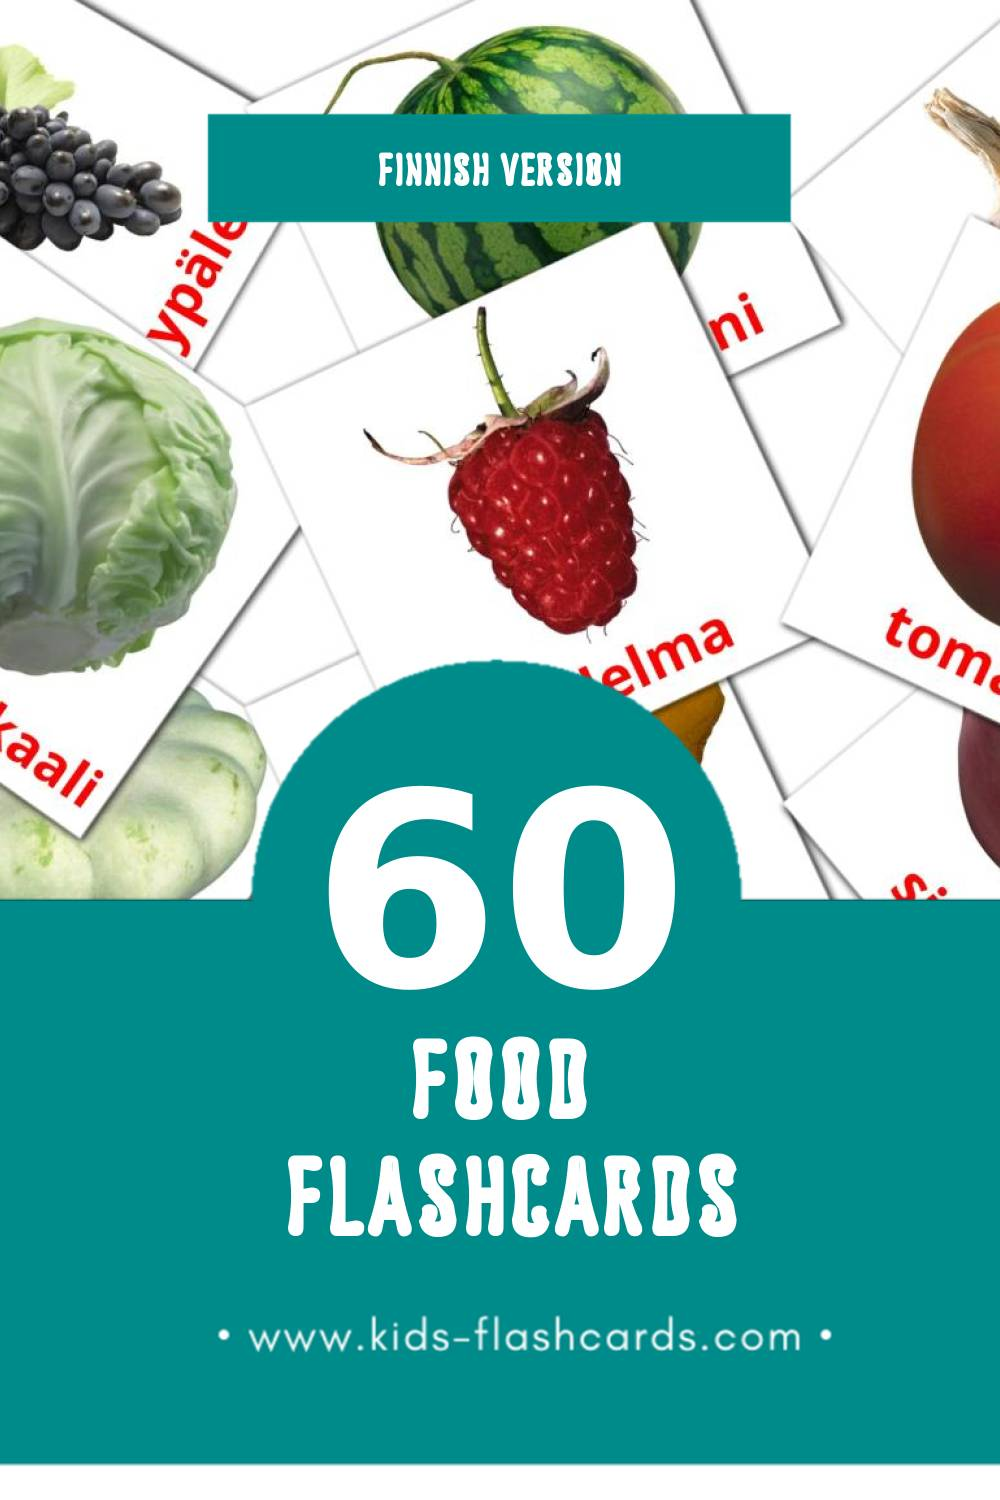 Visual ruoka  Flashcards for Toddlers (60 cards in Finnish)